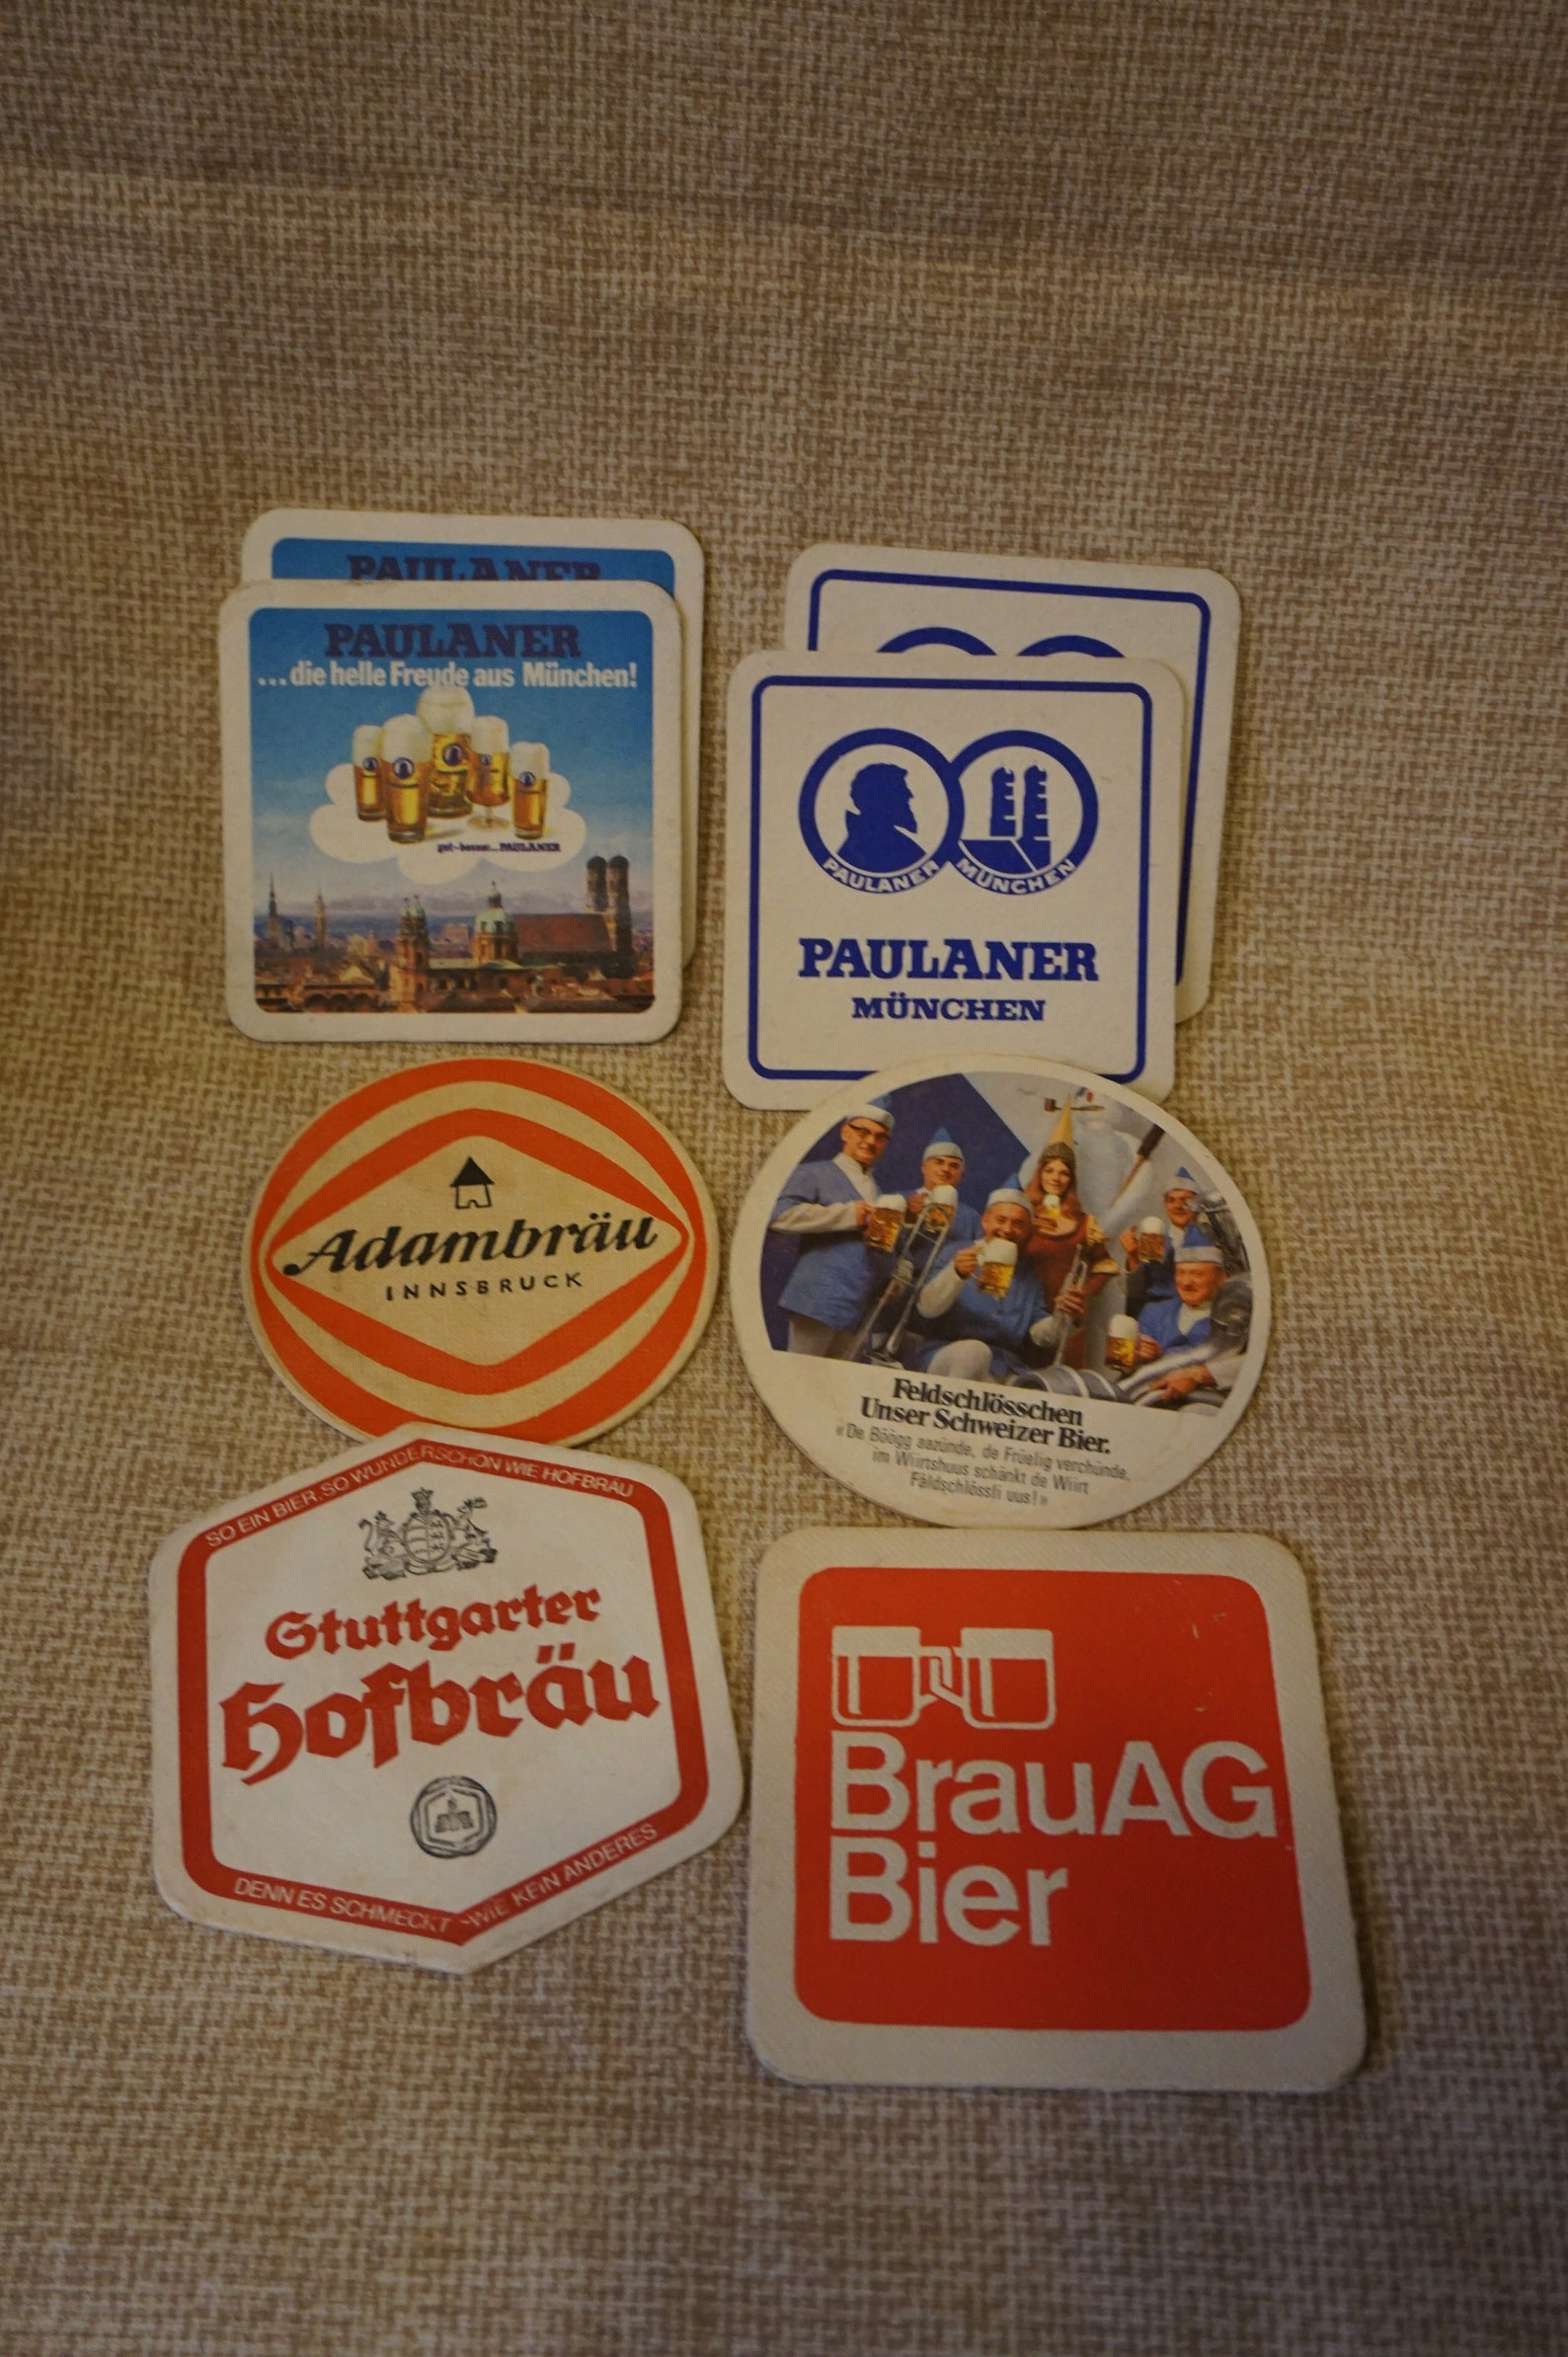 Vintage Beer Coasters German Beer Coaster Pub Coasters Set of 8 Bar Coasters German Beer Coasters